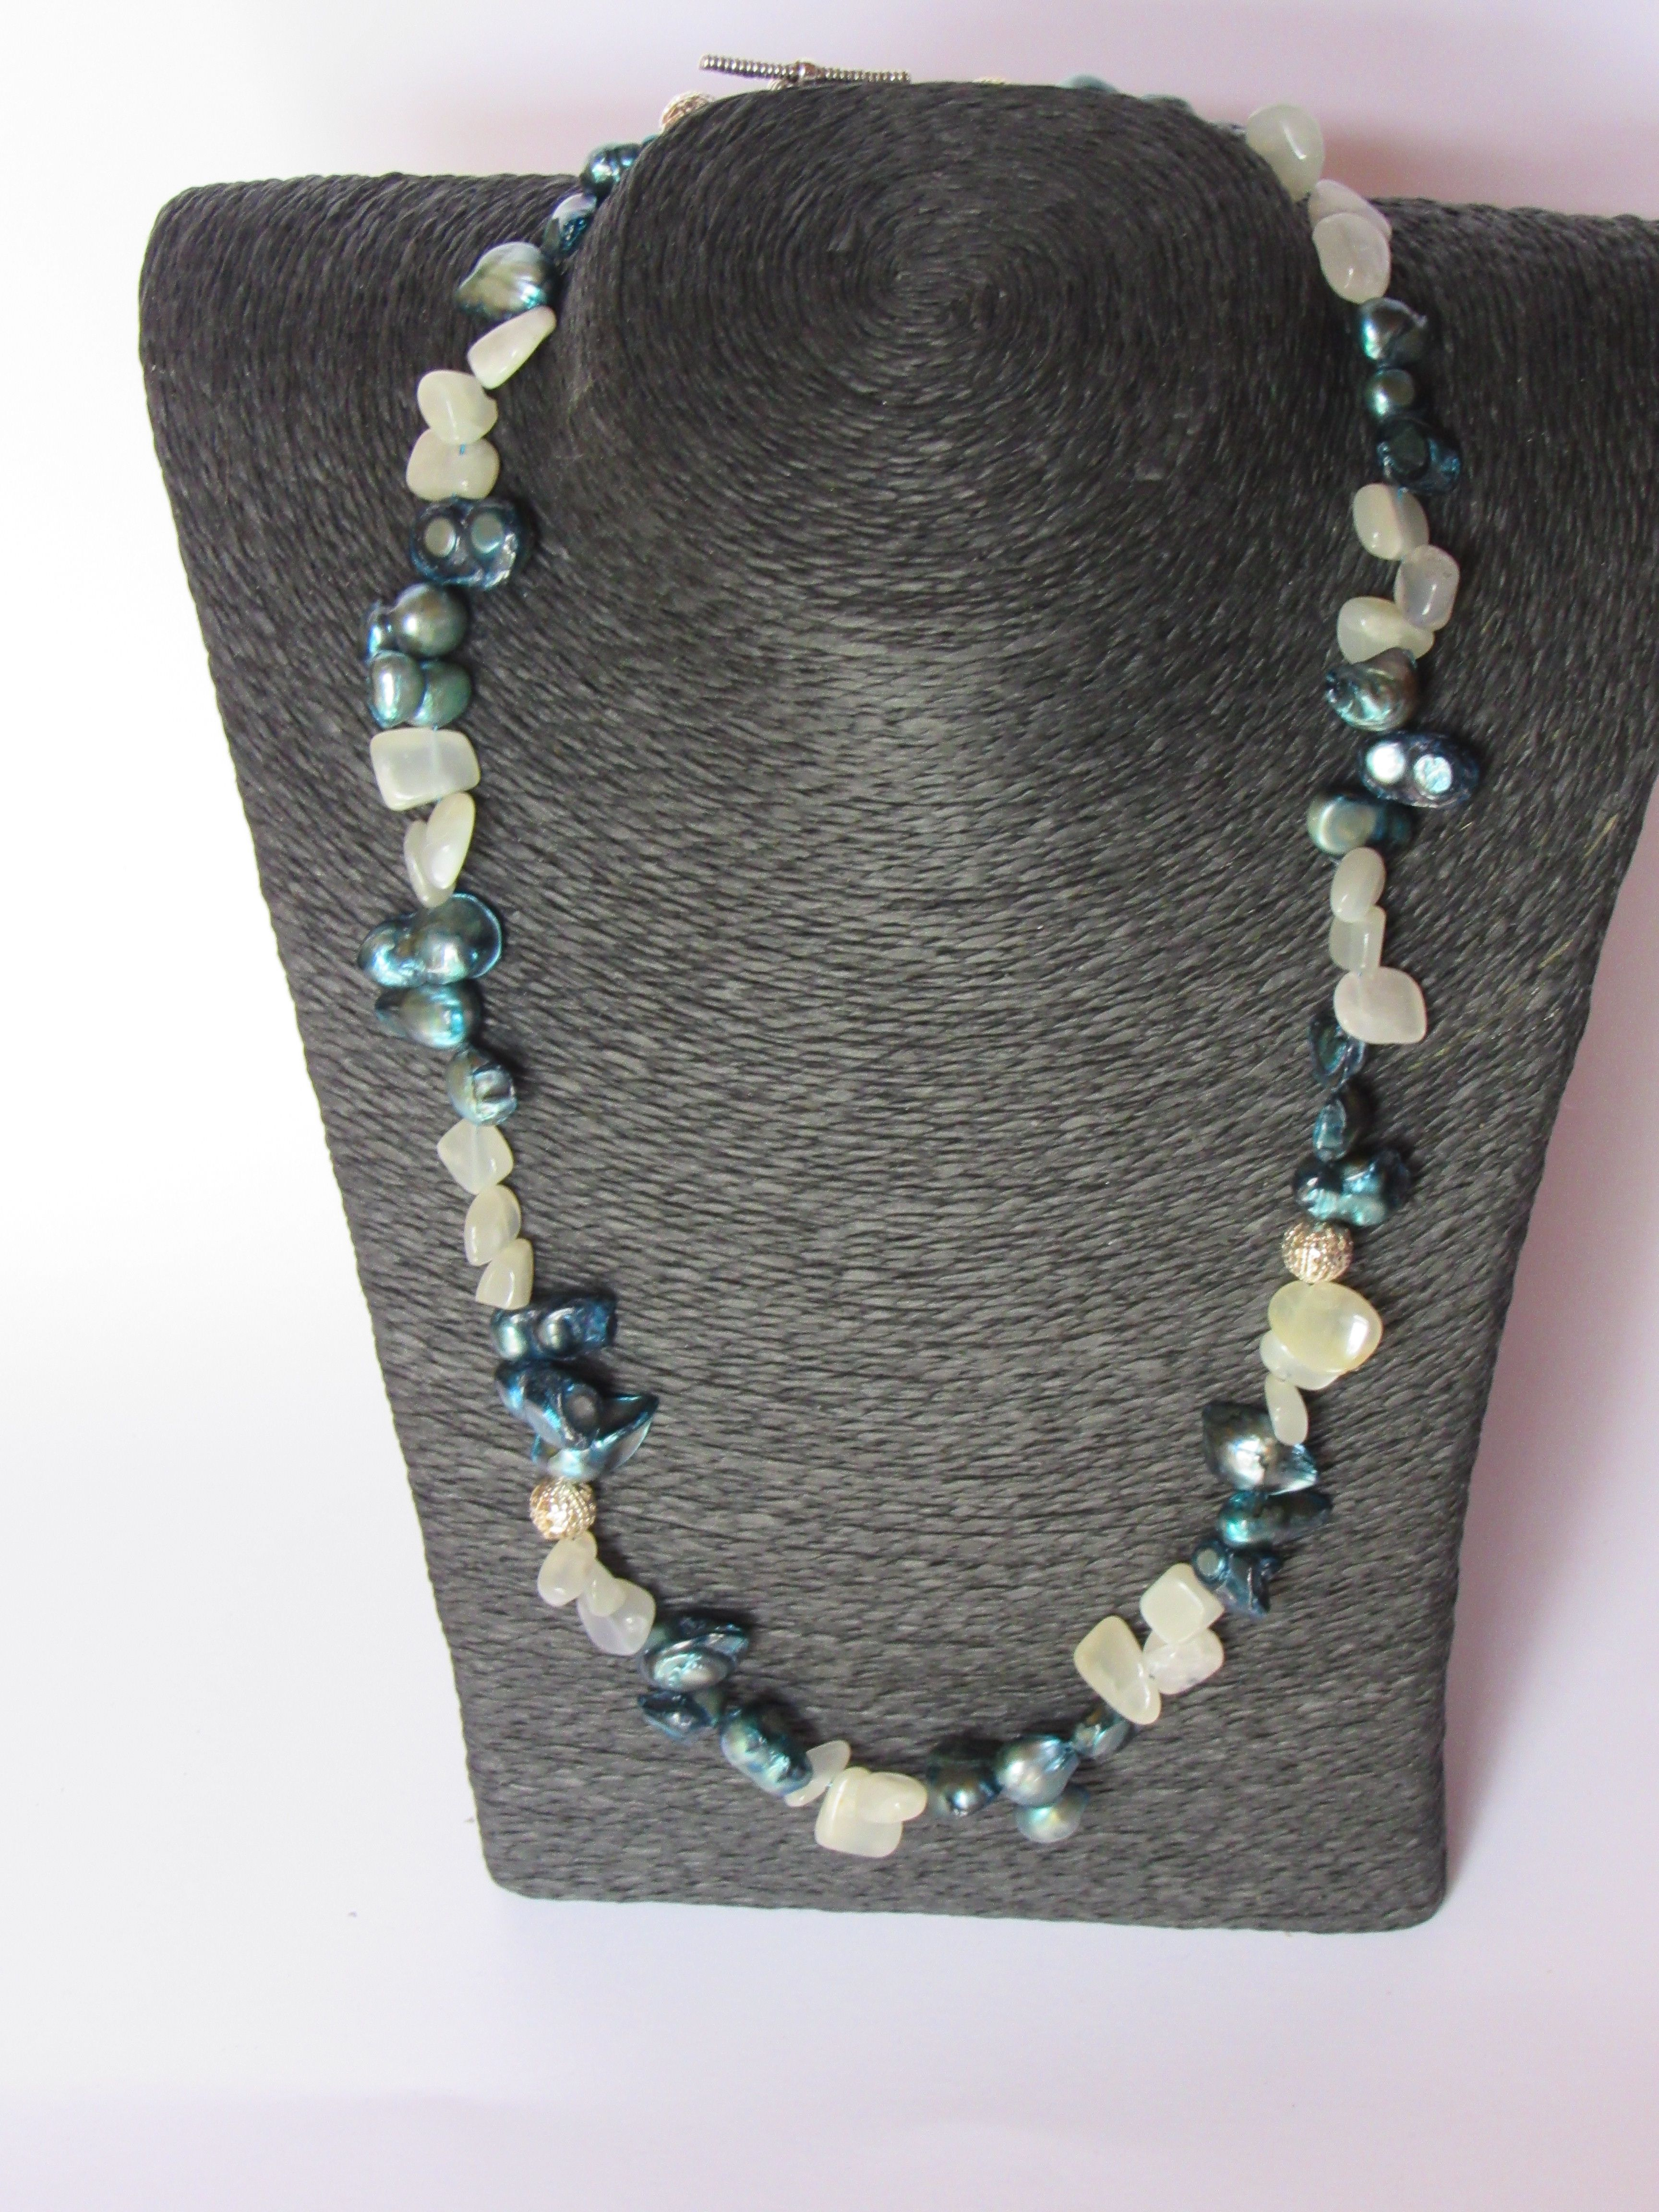 Agathe with moonstone and silver beads. A beautiful combination!